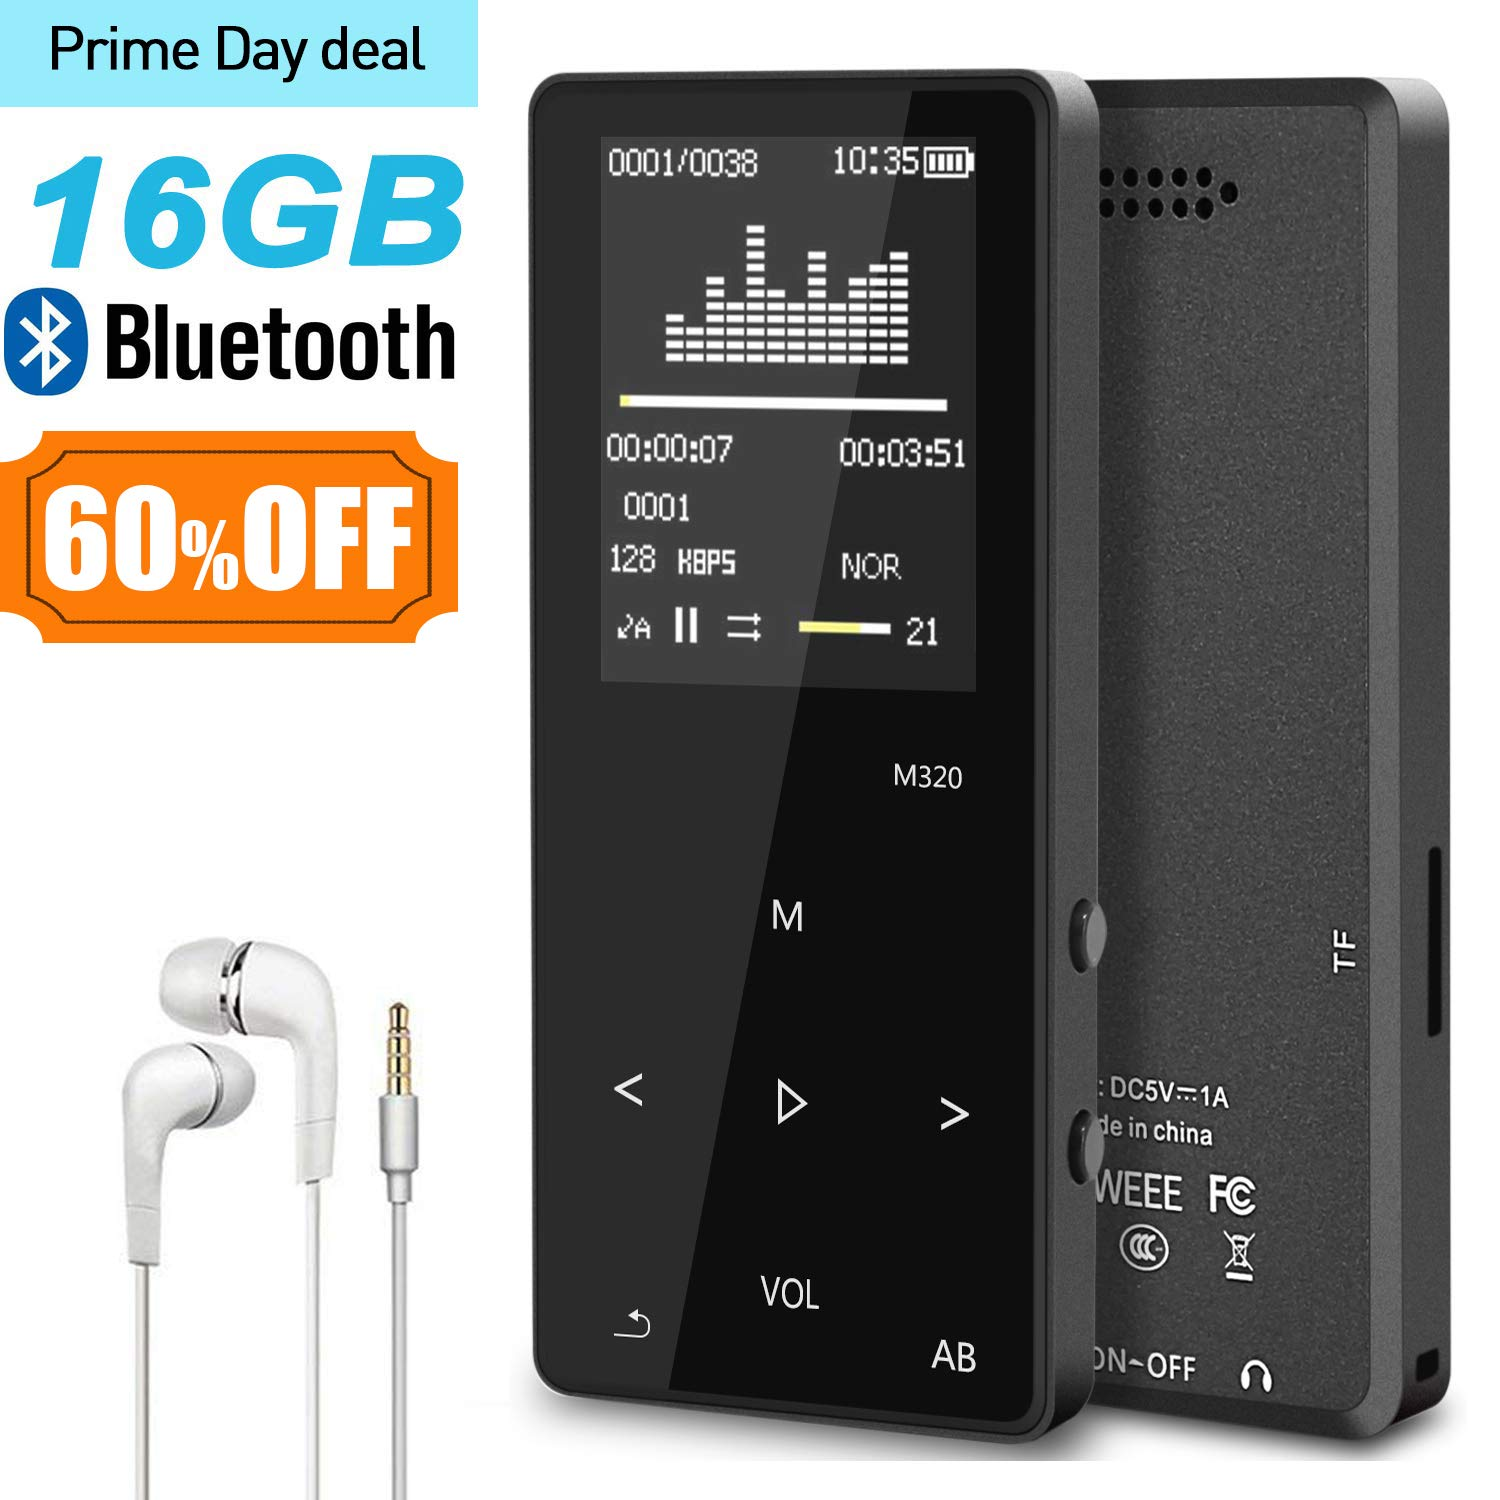 MP3 Music Player with Bluetooth, ASINNO 16GB Digital Lossless MP3/MP4 Audio Player with Voice Recorder/FM Radio/Media Player/E-Book Reader/Photo Viewer, Support up to 128GB-Black